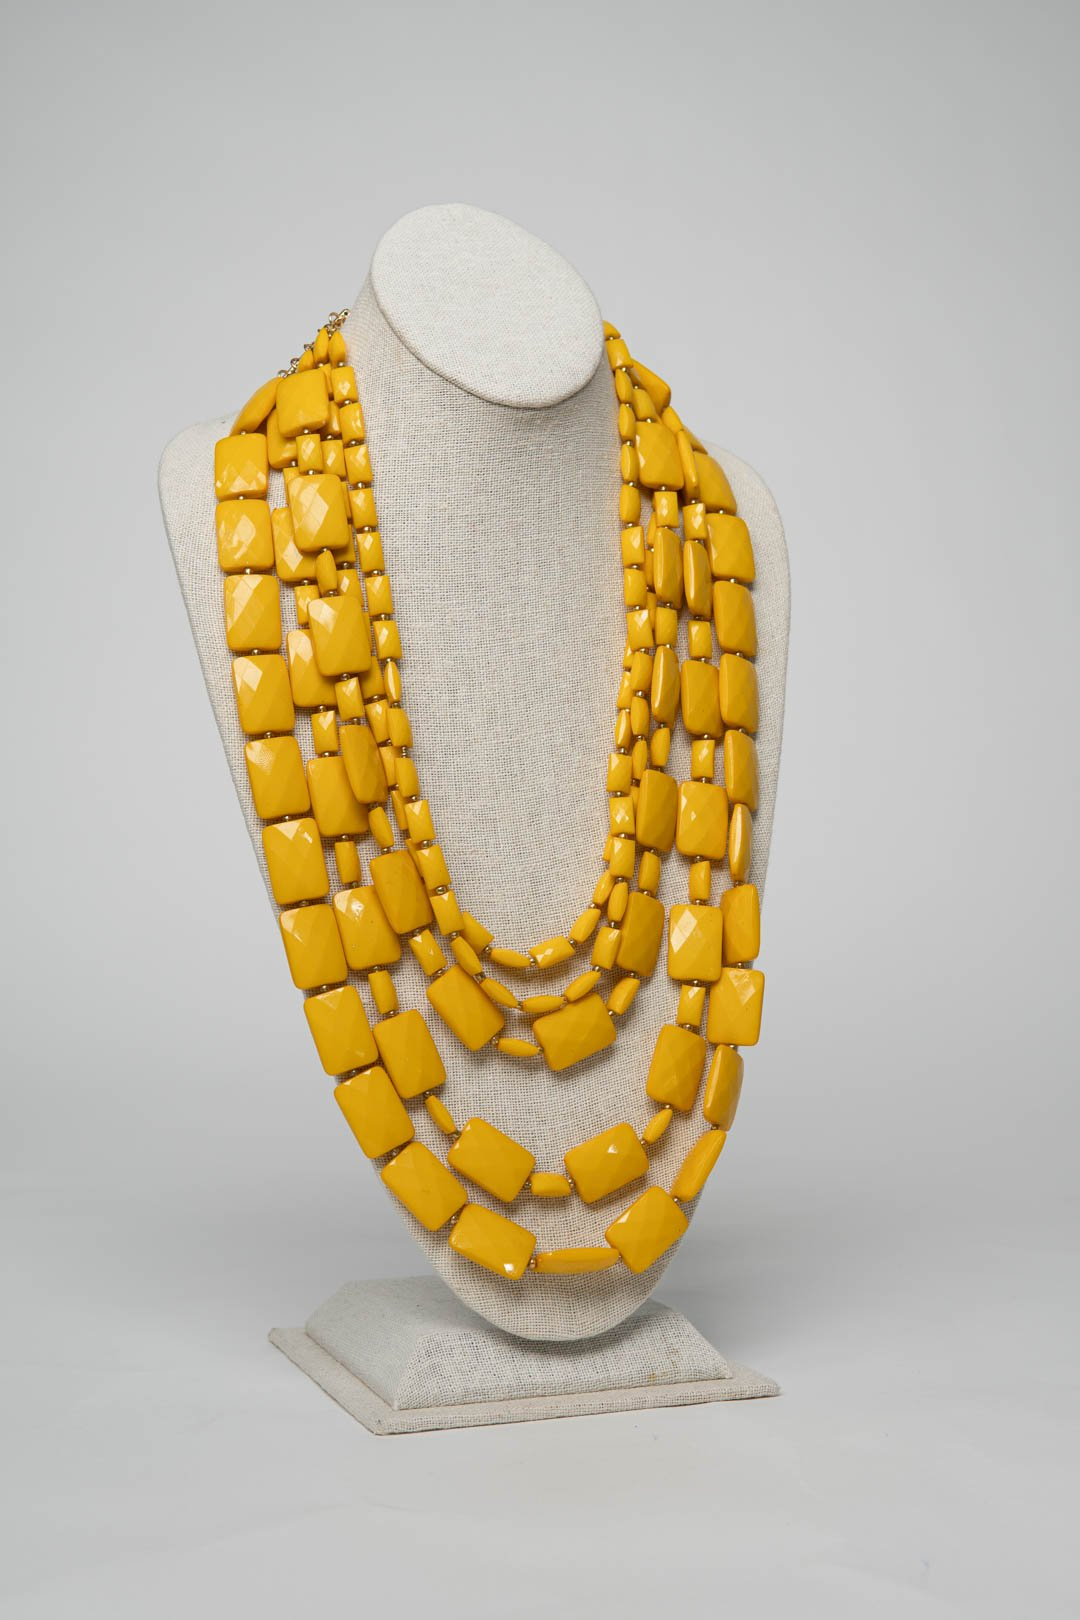 Fiesta Necklace Emerald Cut - Lemon - Necklace